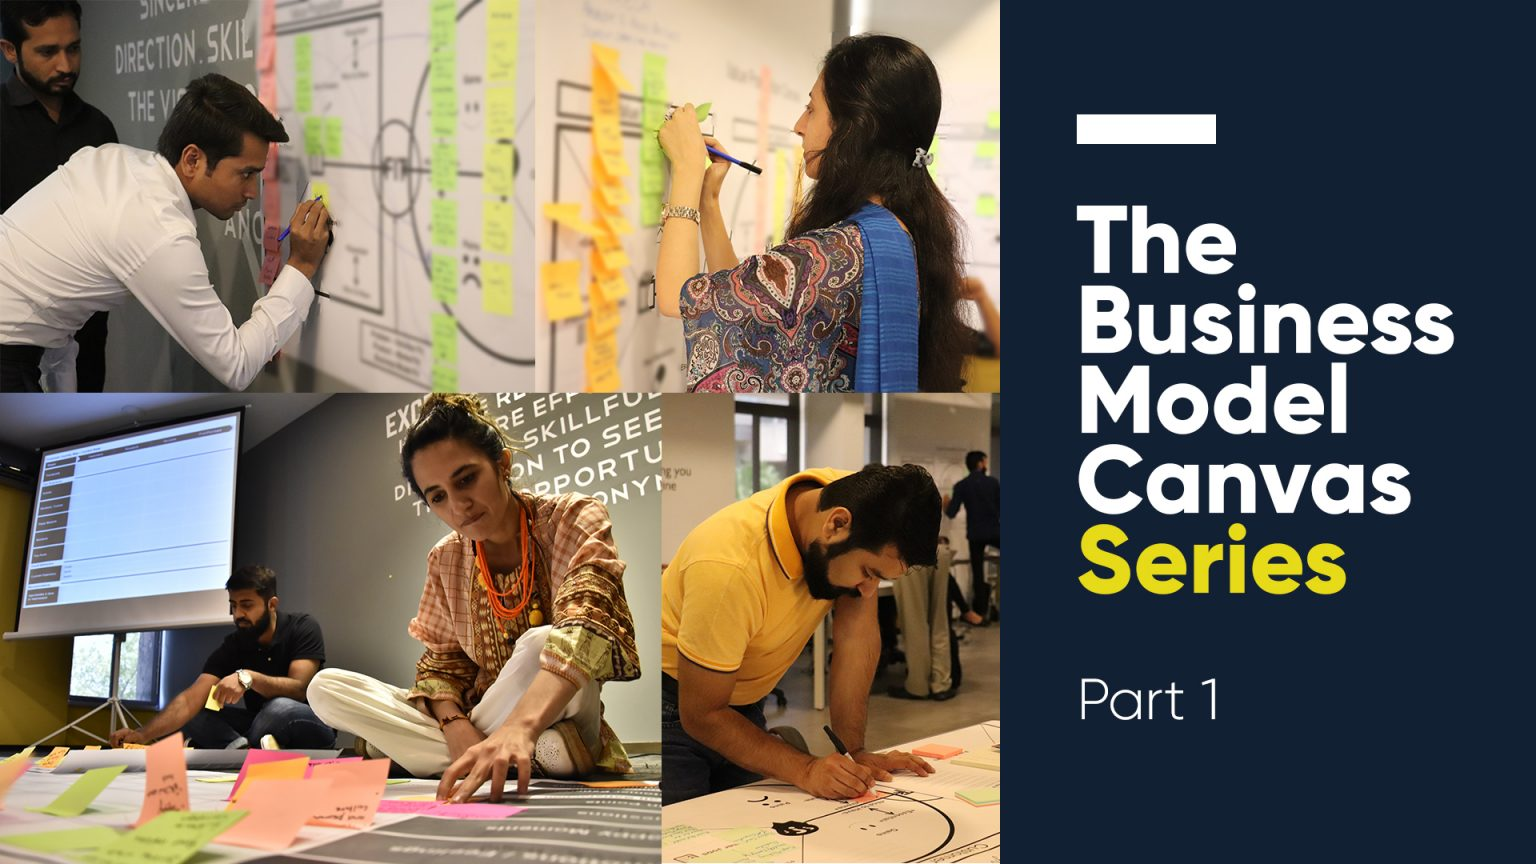 Part 1: The Business Model Canvas - A recipe for Entrepreneurial Success